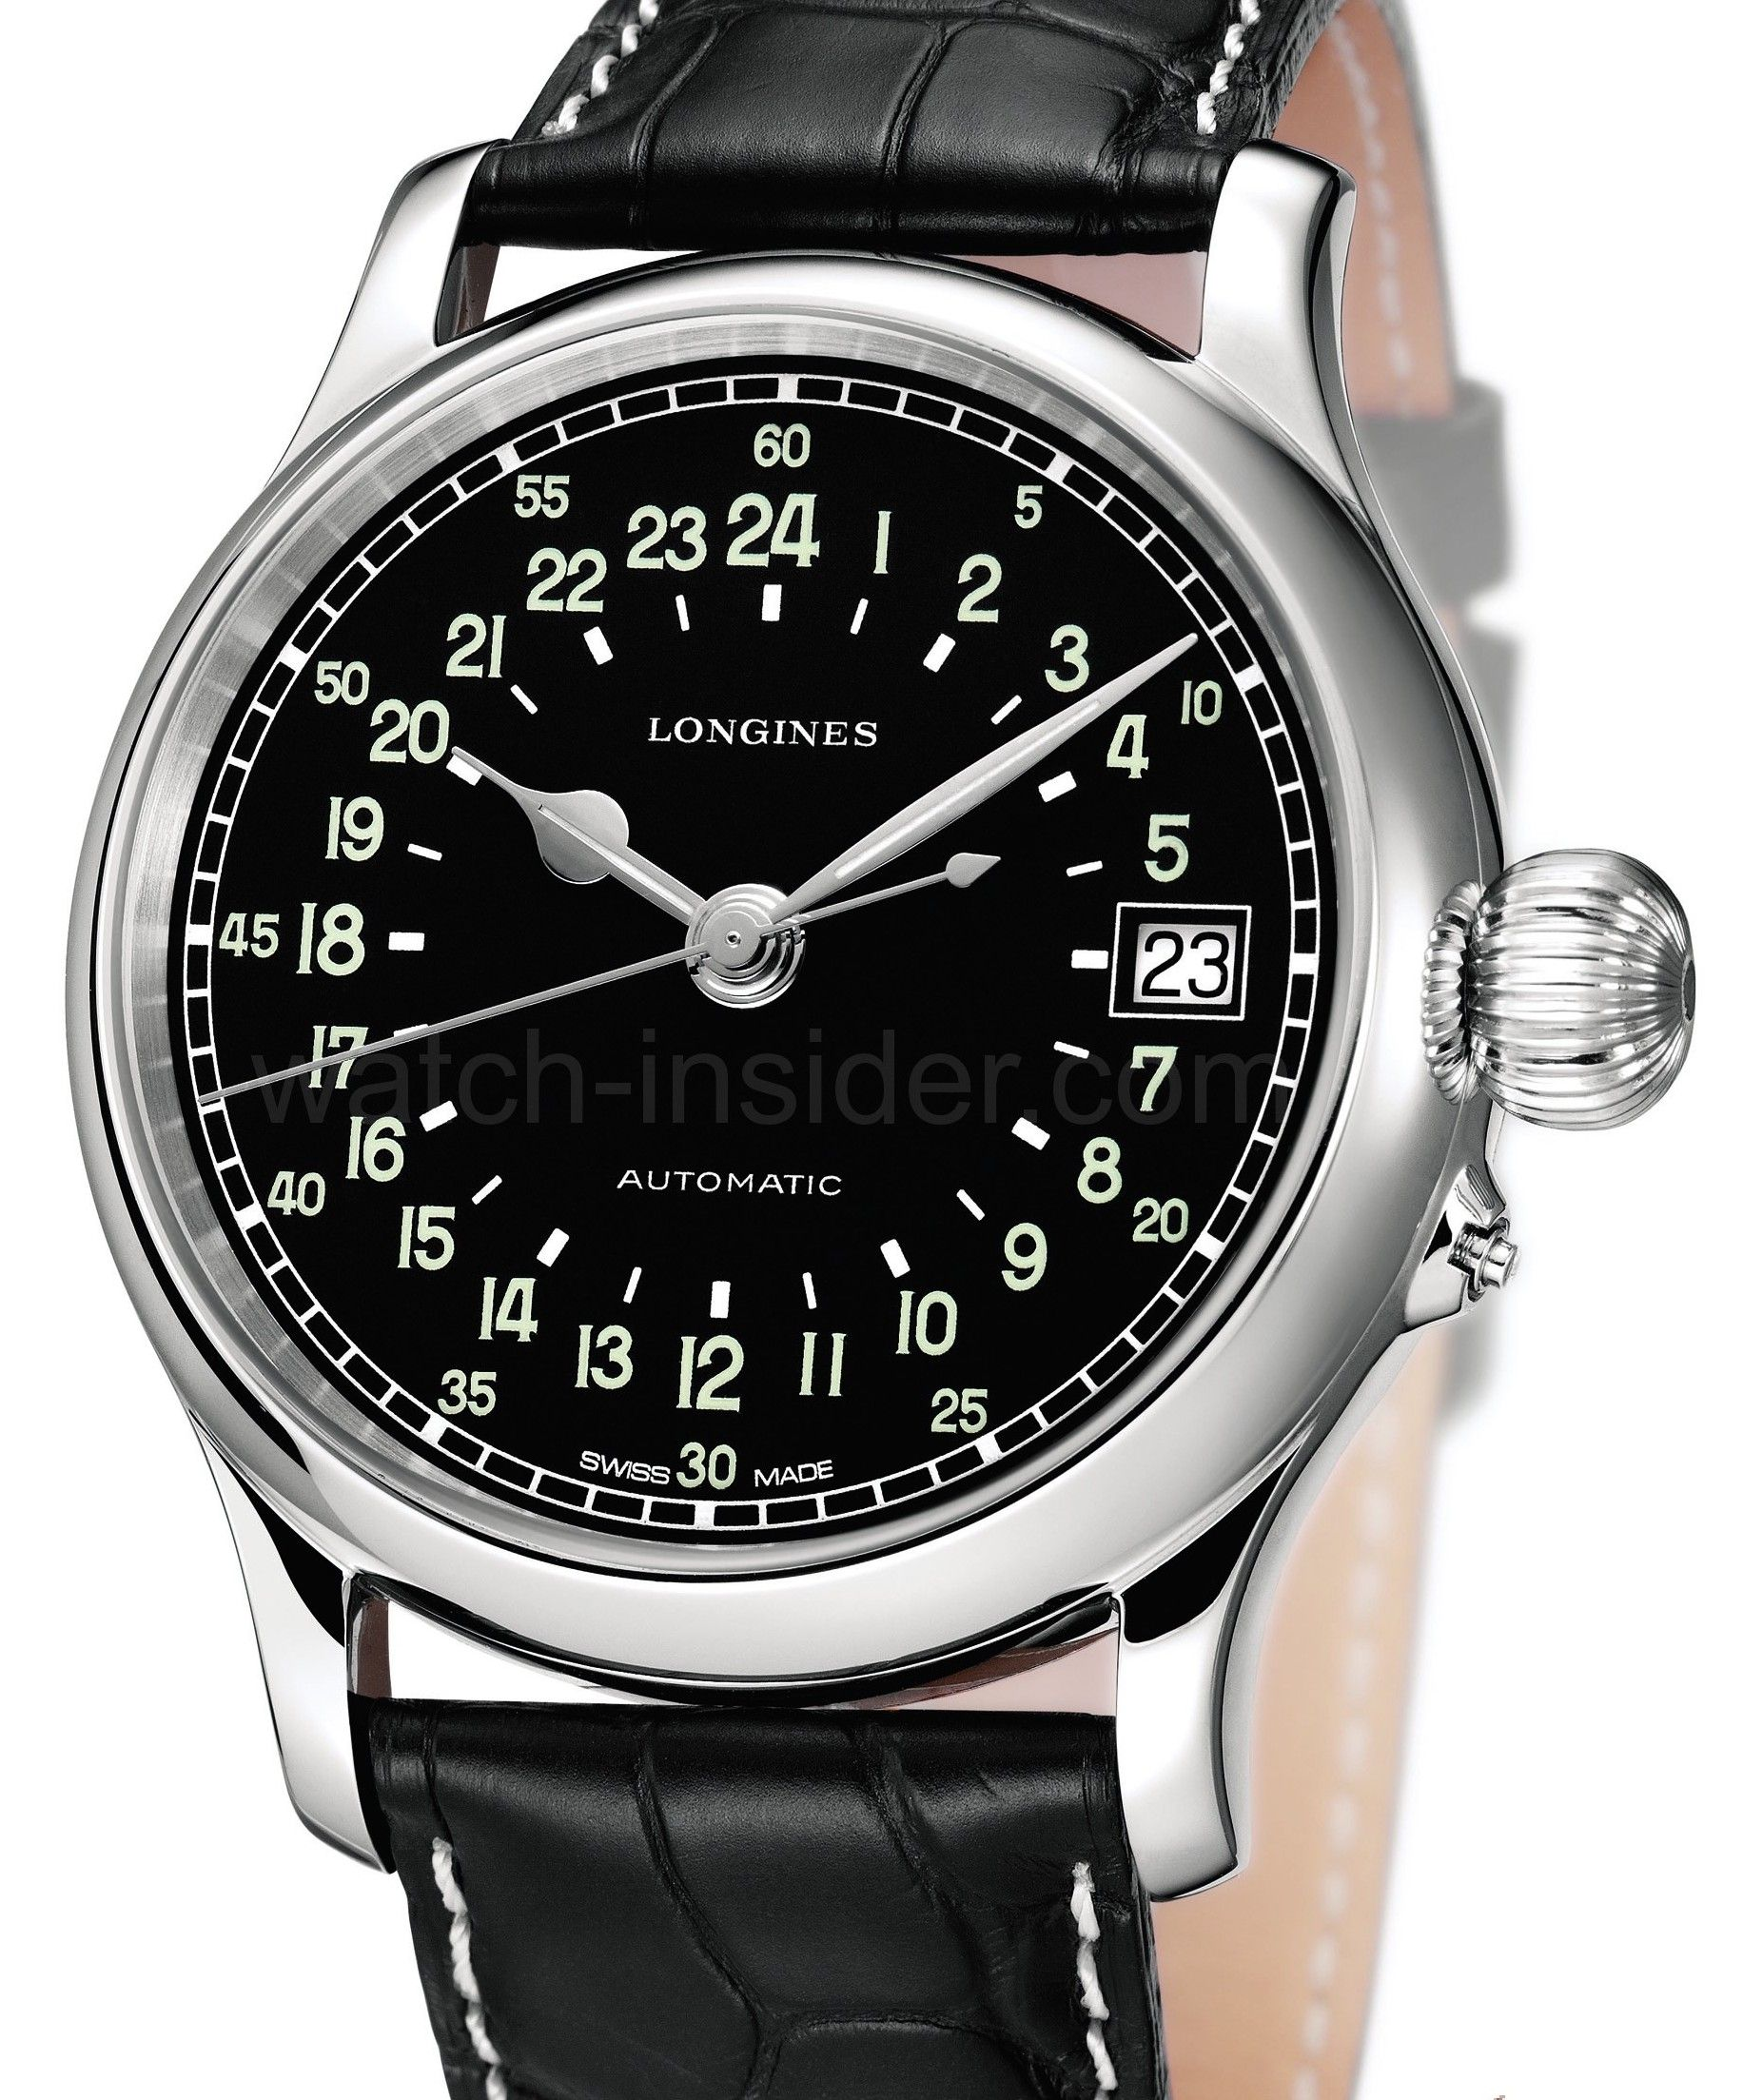 ww gmt hands i br watches watch ross bell on